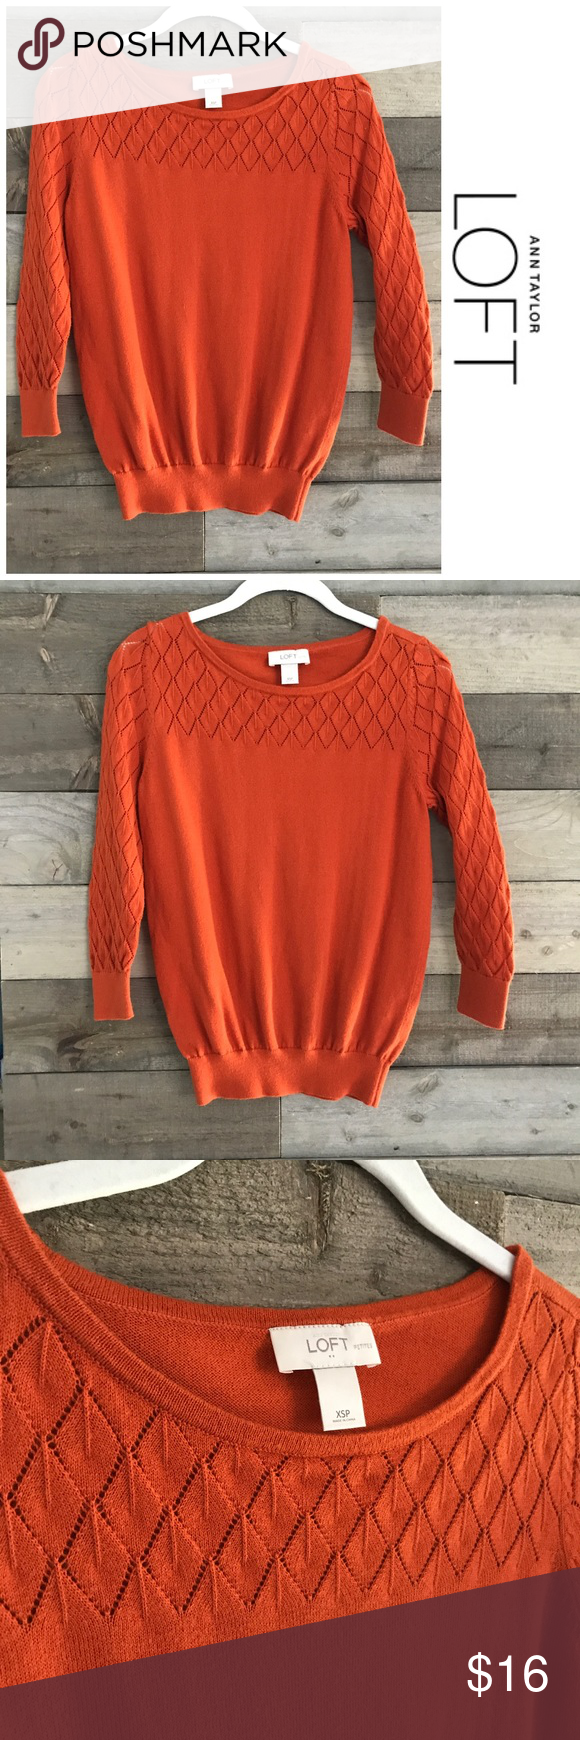 LOFT Burnt Orange Sweater | Lofts and Customer support